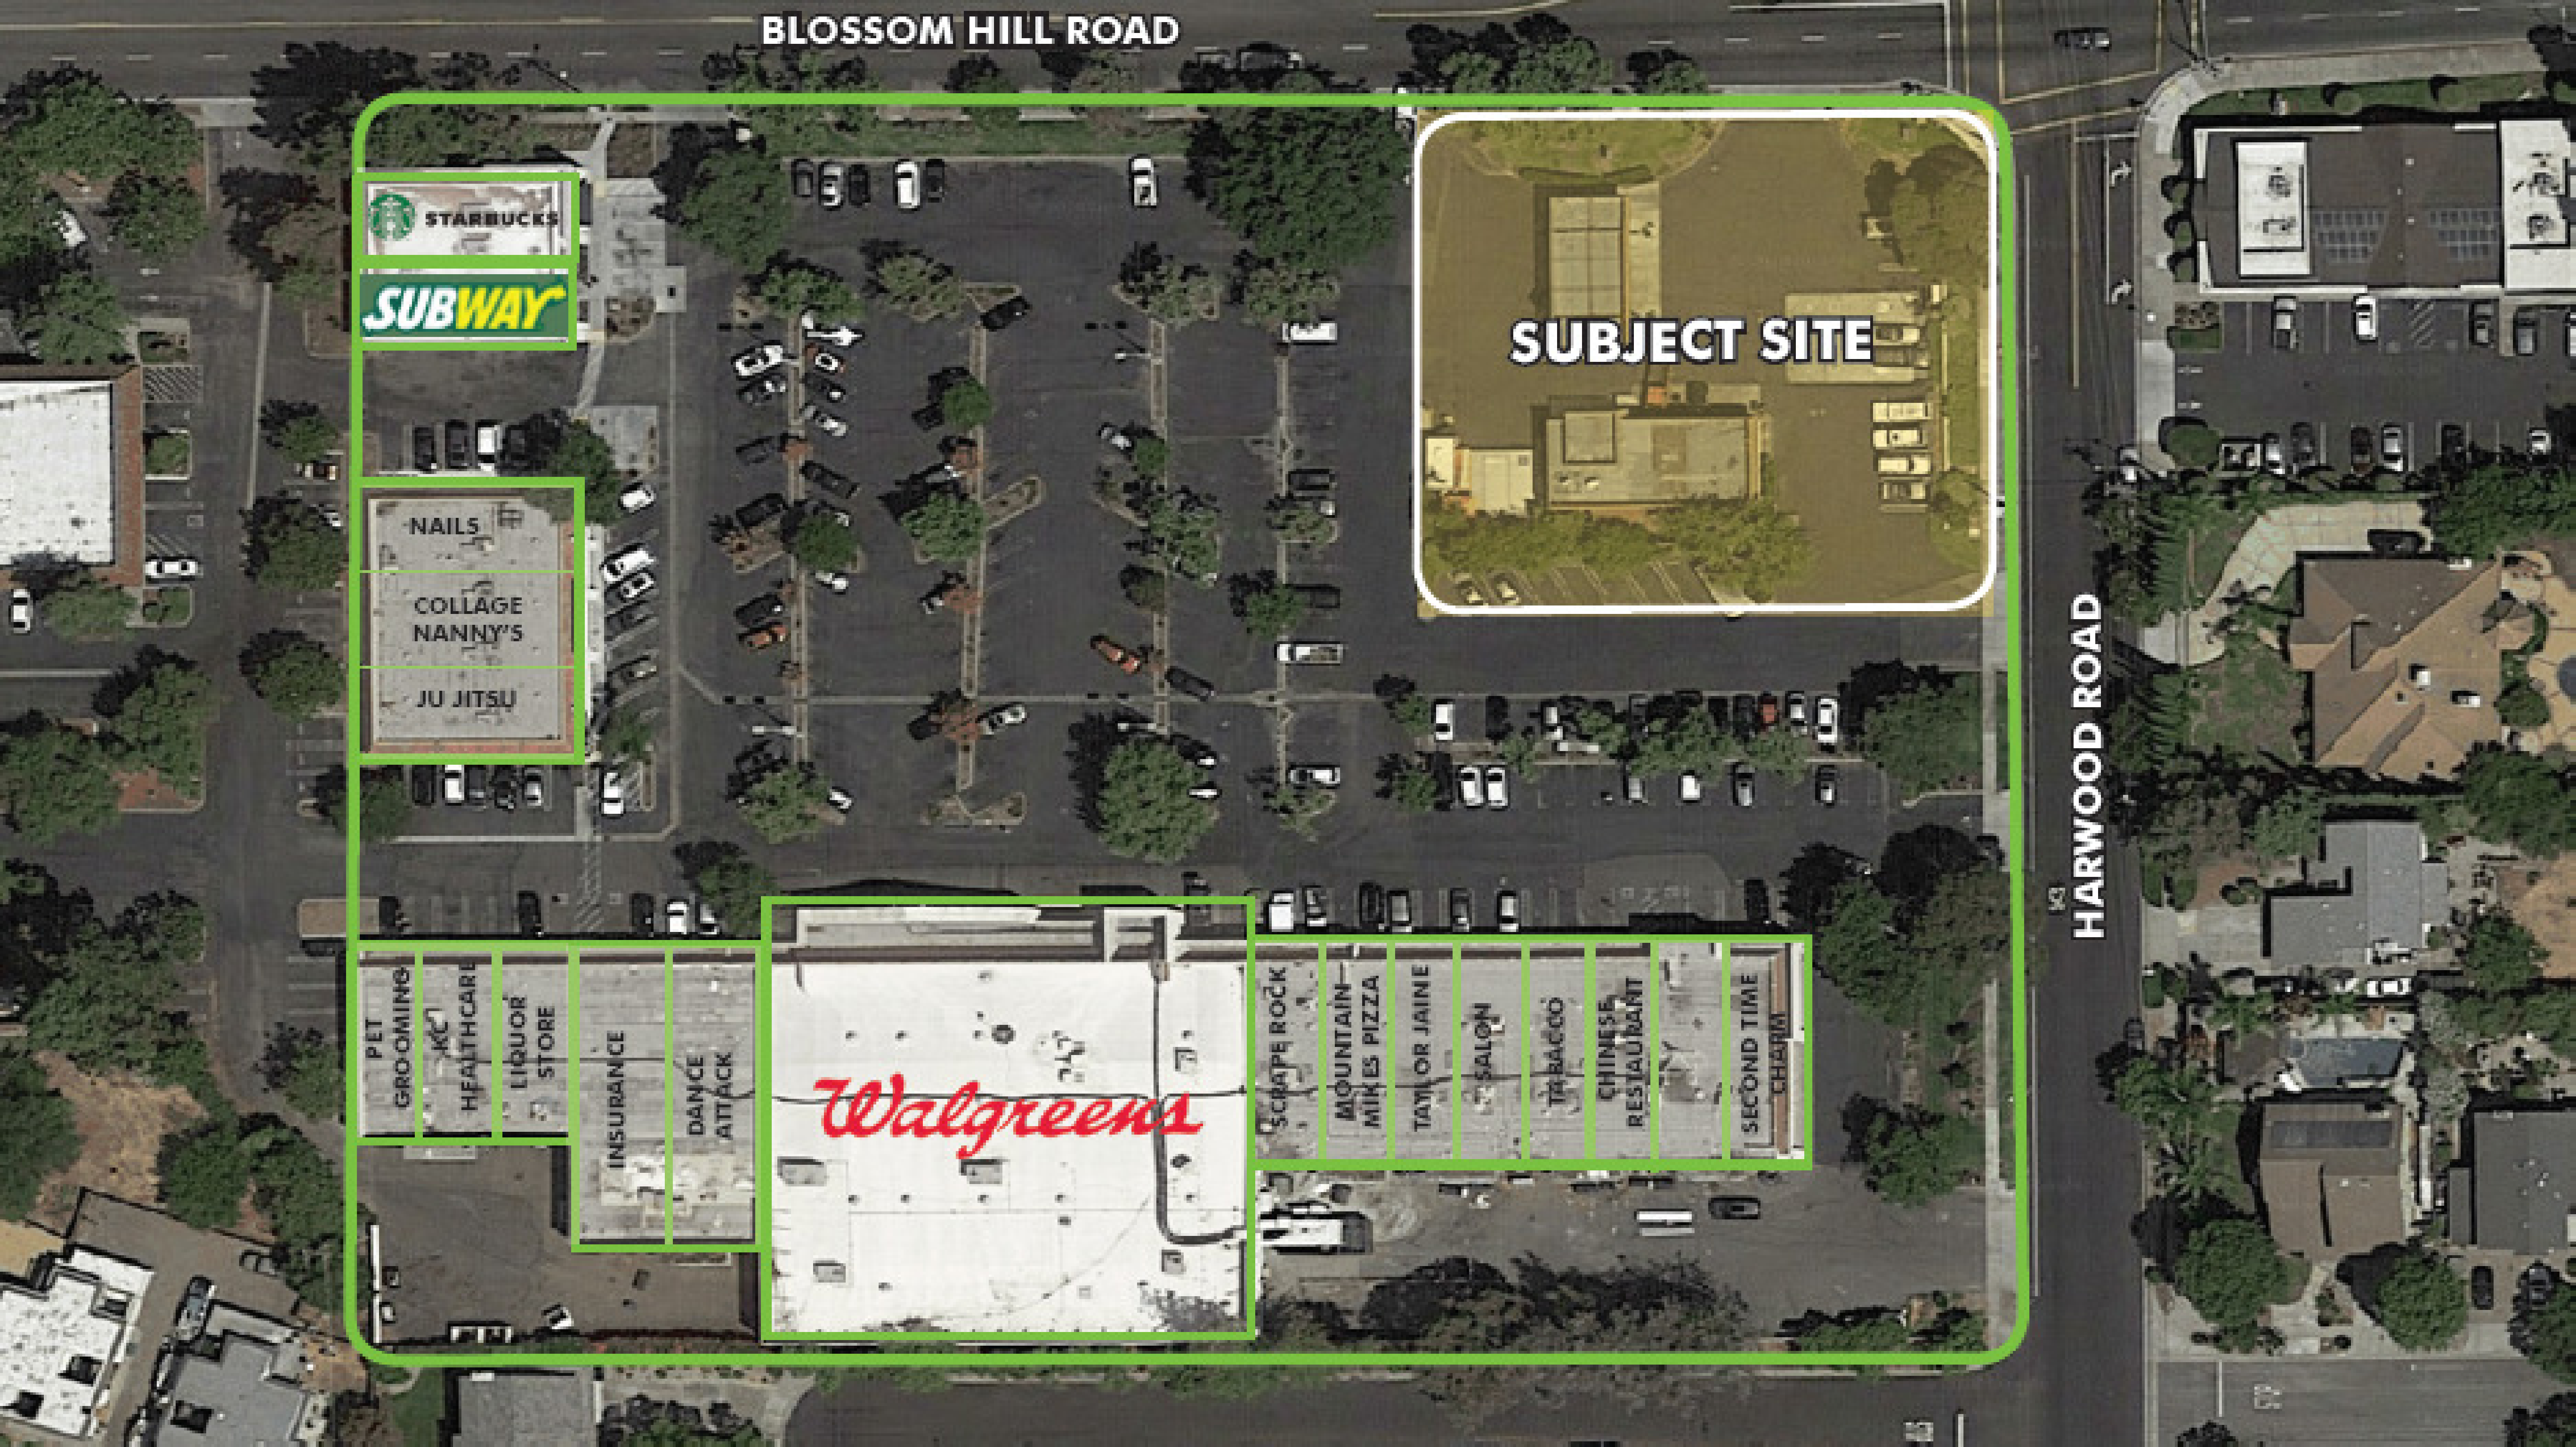 14000 Blossom Hill Rd: site plan